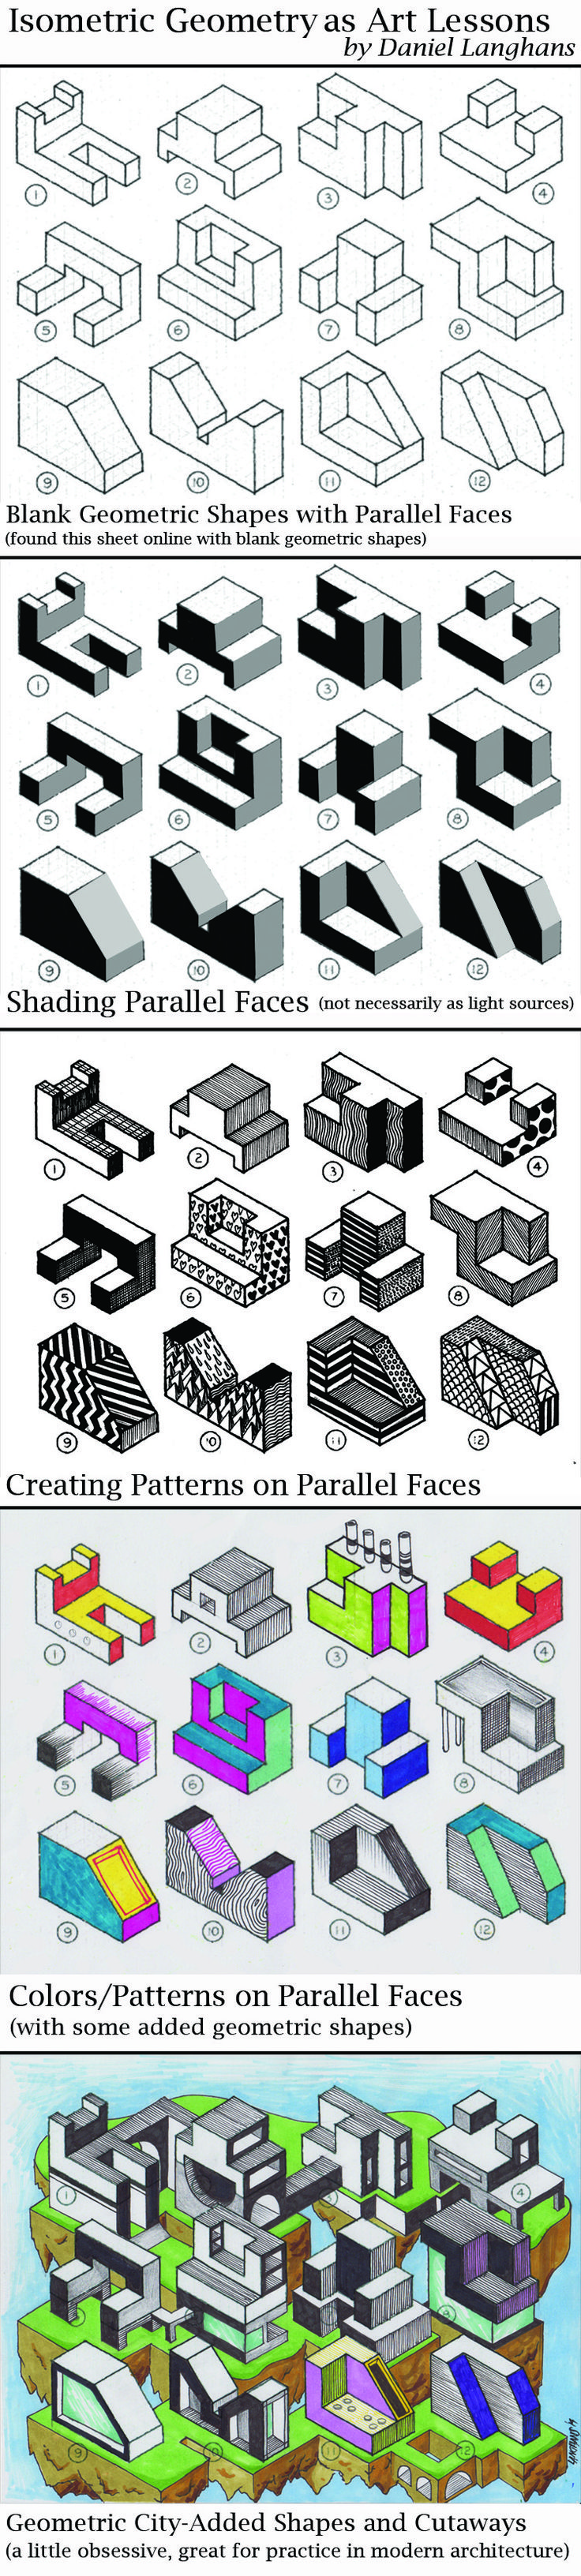 9 best drawing images on Pinterest | Technical drawings ...